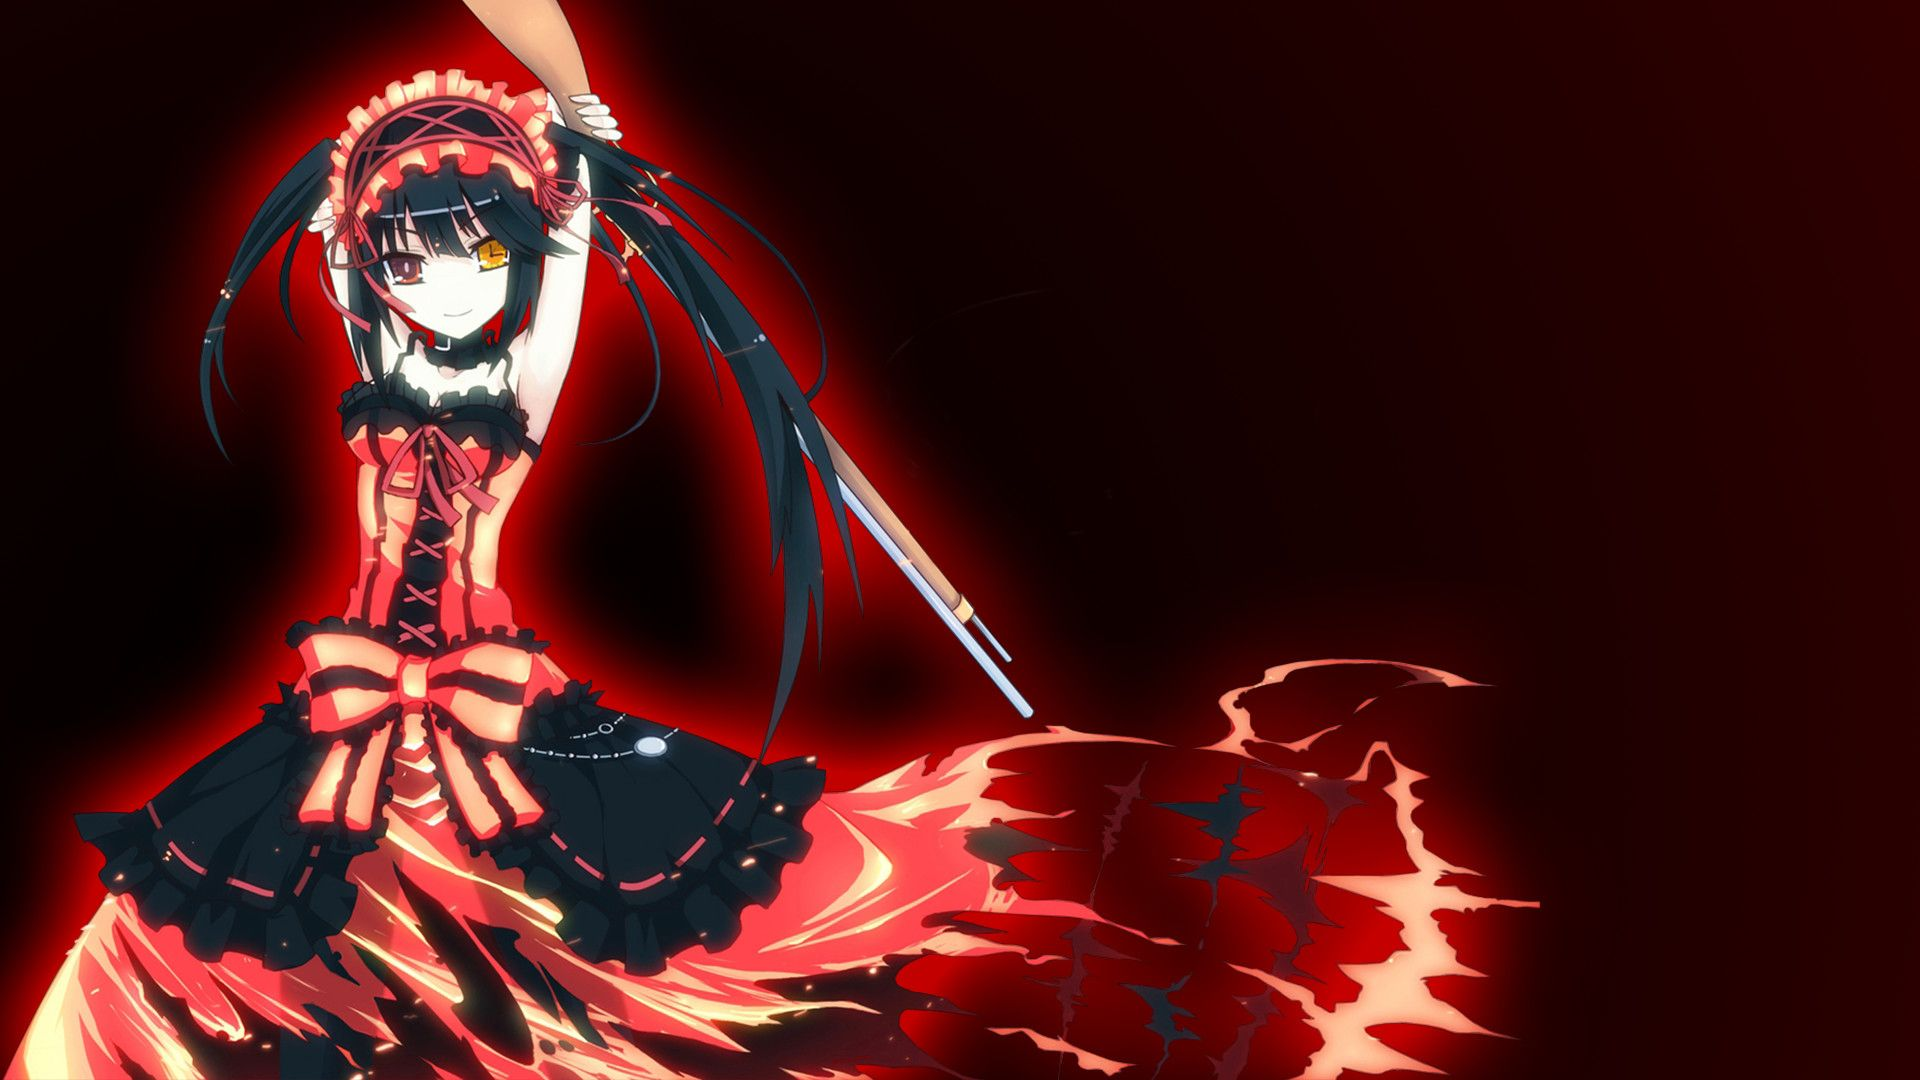 Red And Black Wallpaper Anime